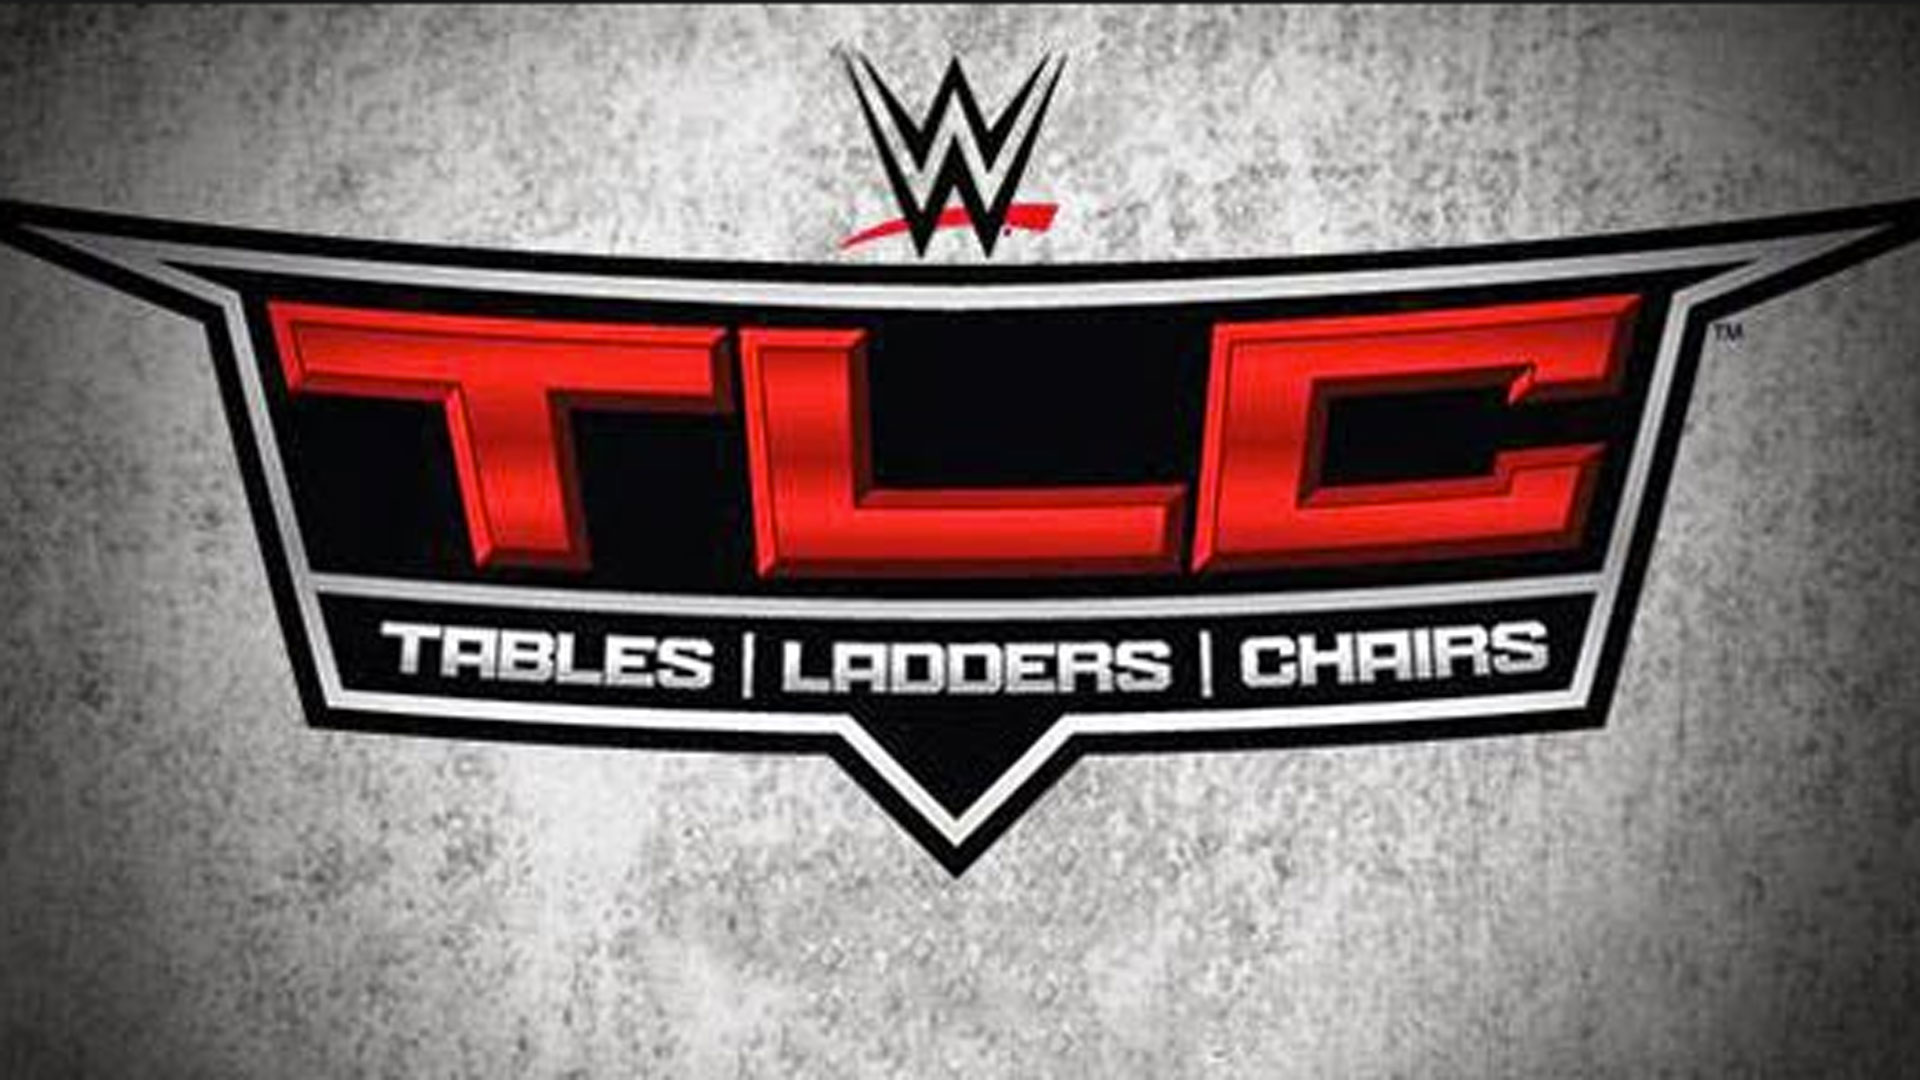 Wwe Deutschland 2017 Wwe Tlc 2015 Live Updates From The Pay Per View Event